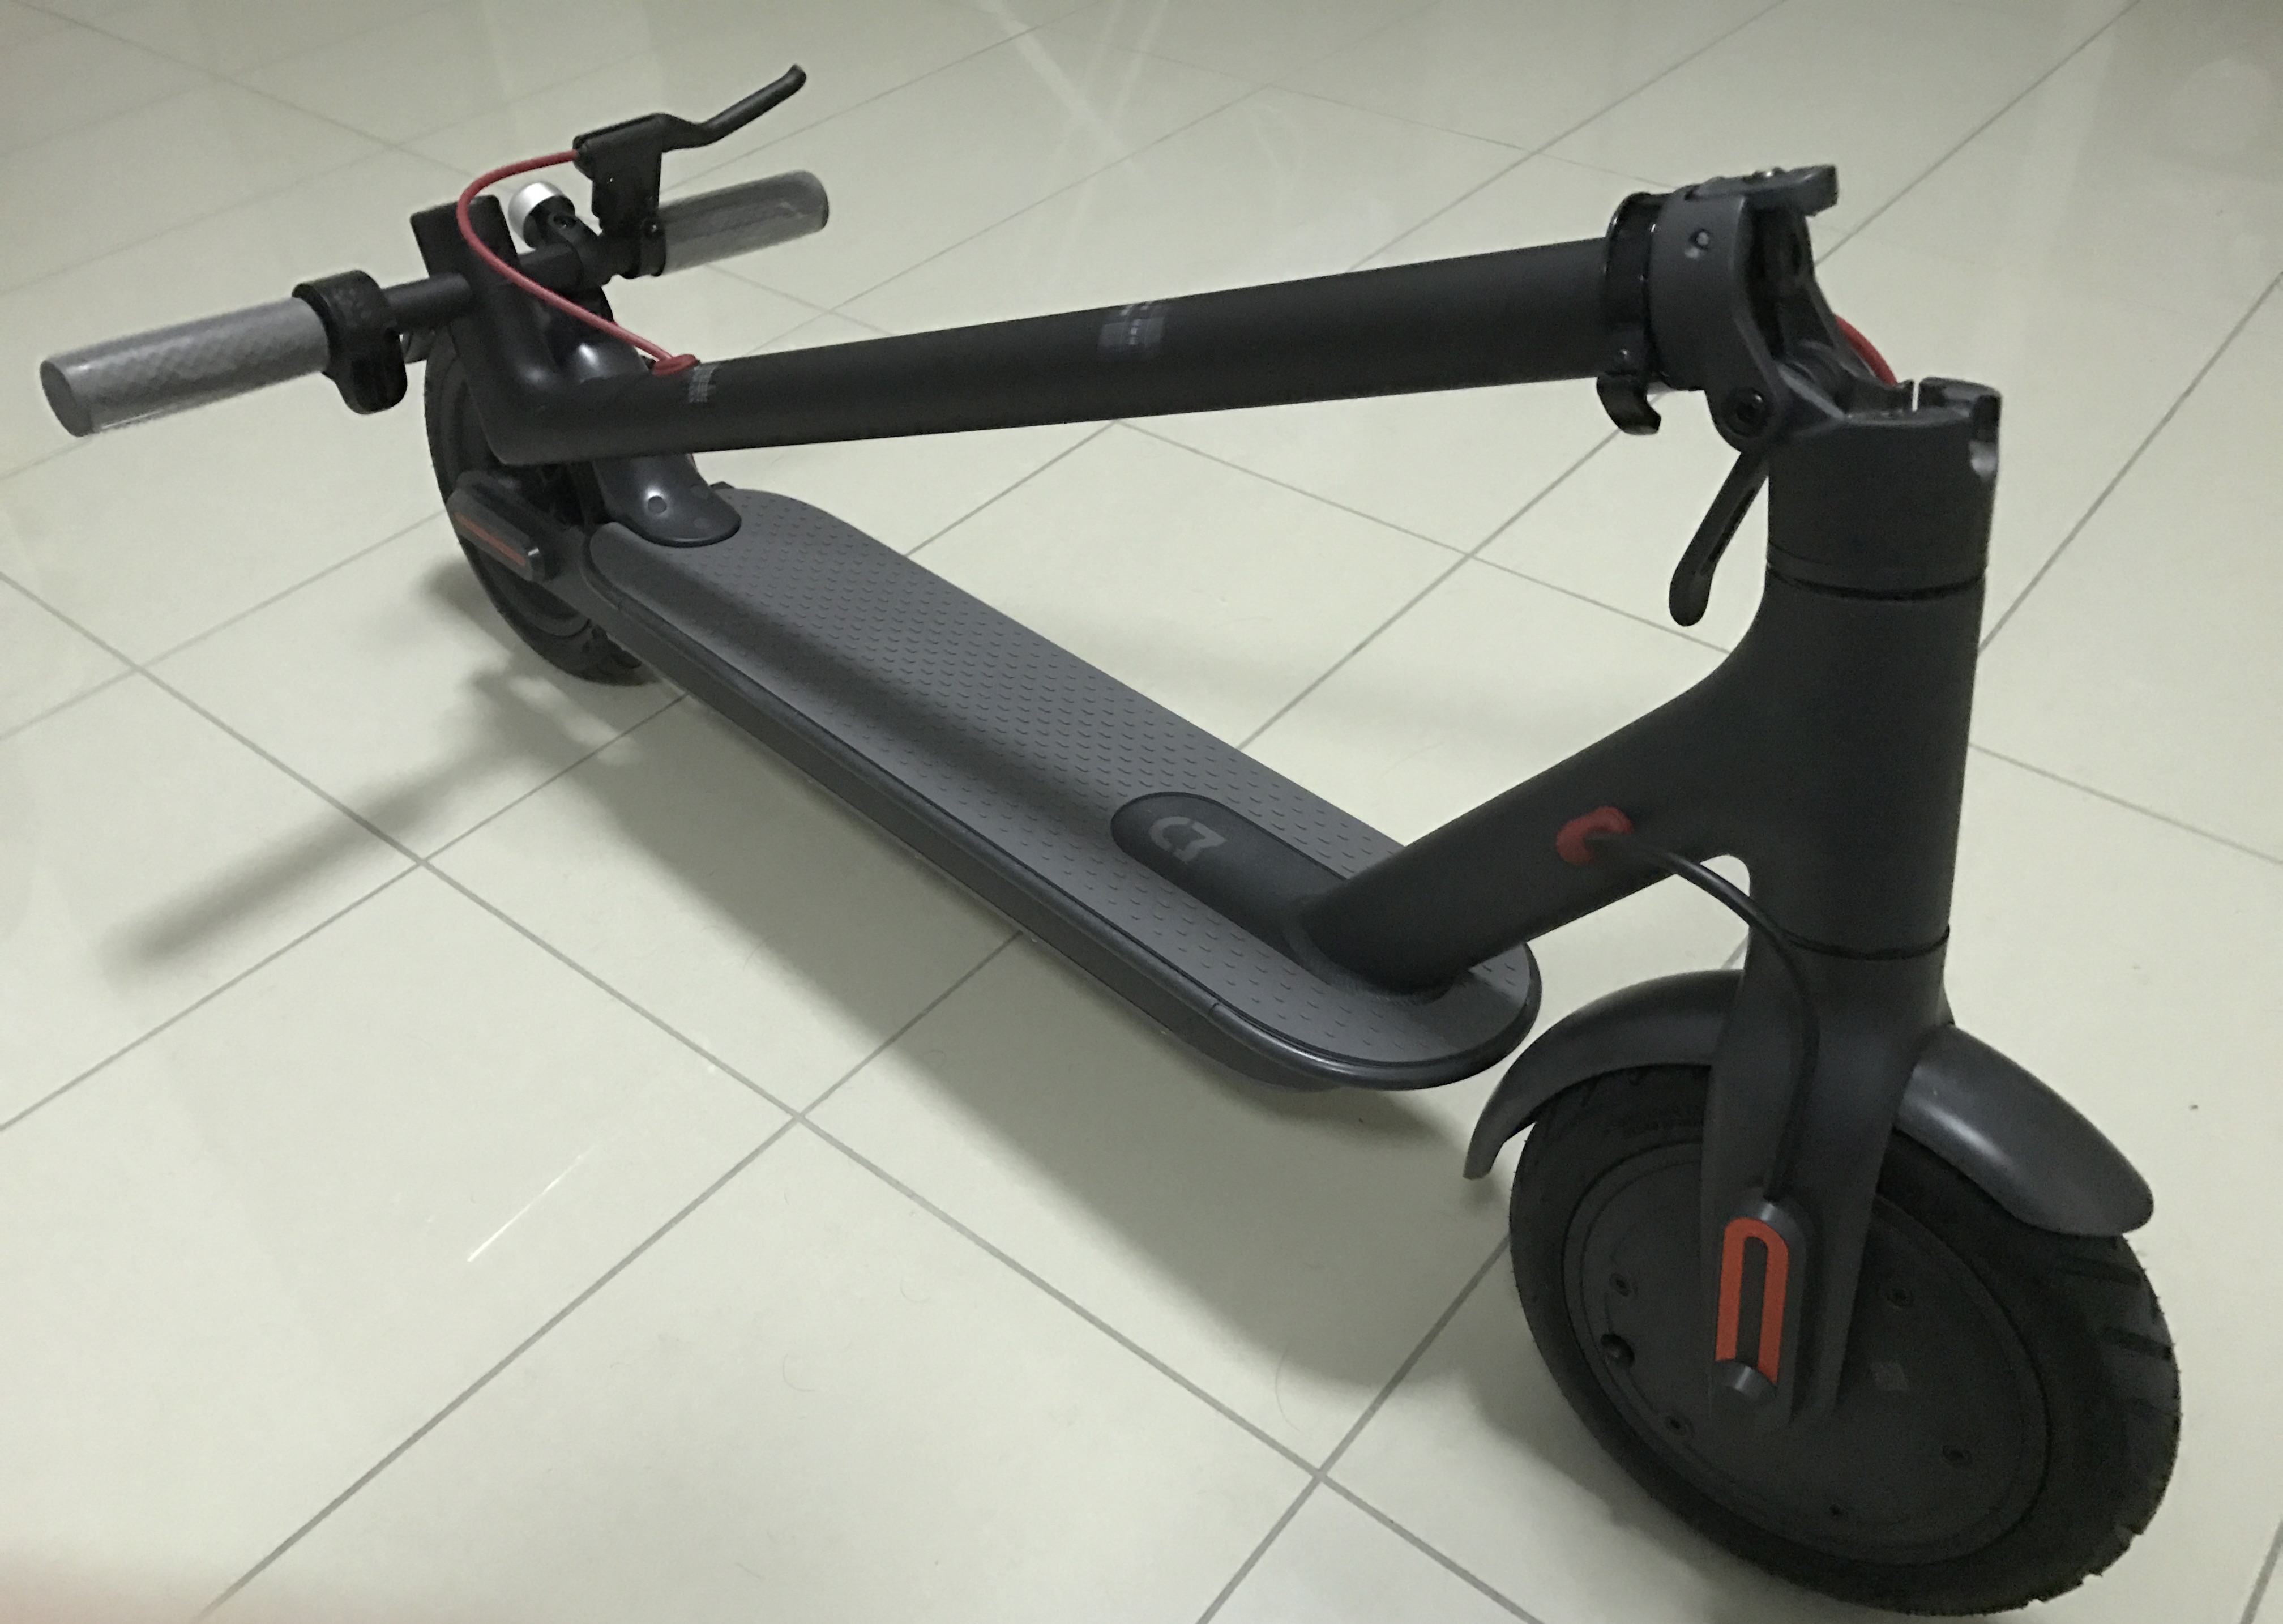 The Xiaomi M365 Electric Scooter | Benny Ling's Bling